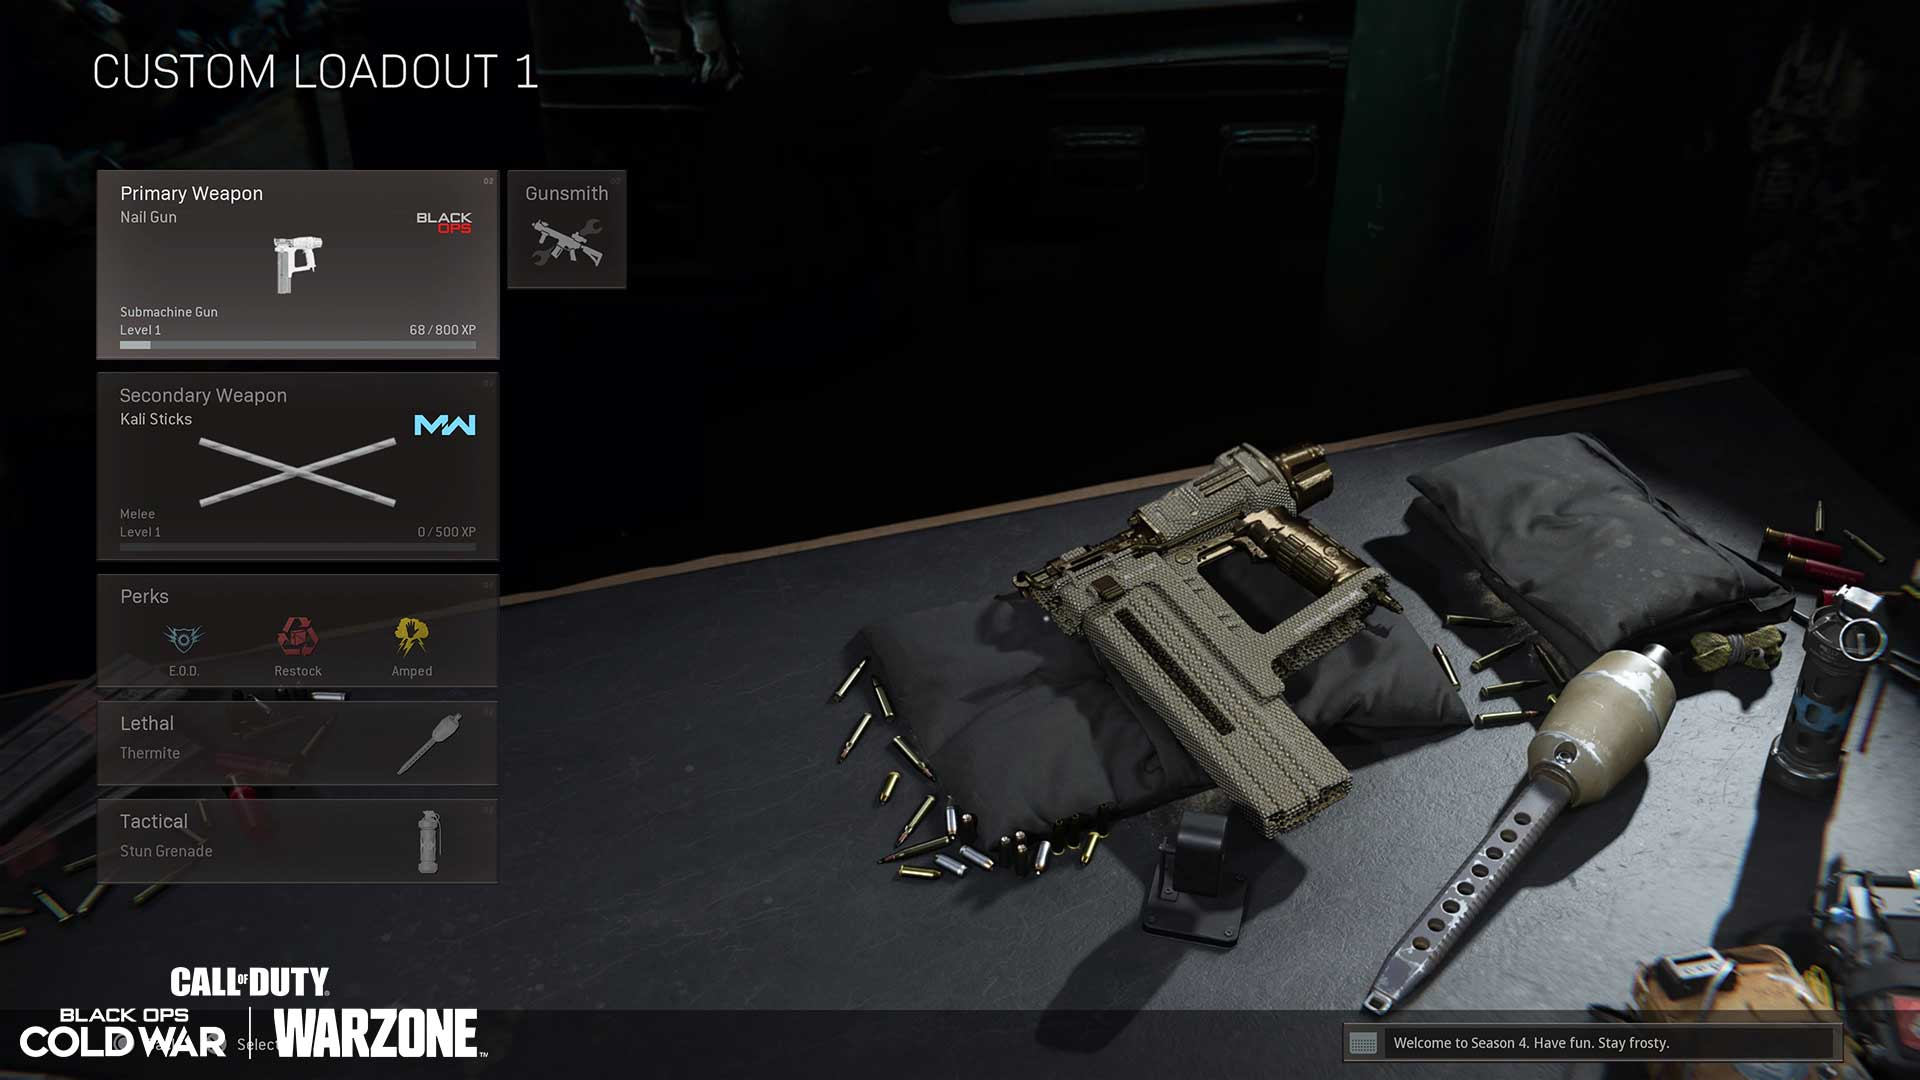 Even Warzone is a place to shine for the Naaaaaail Gun